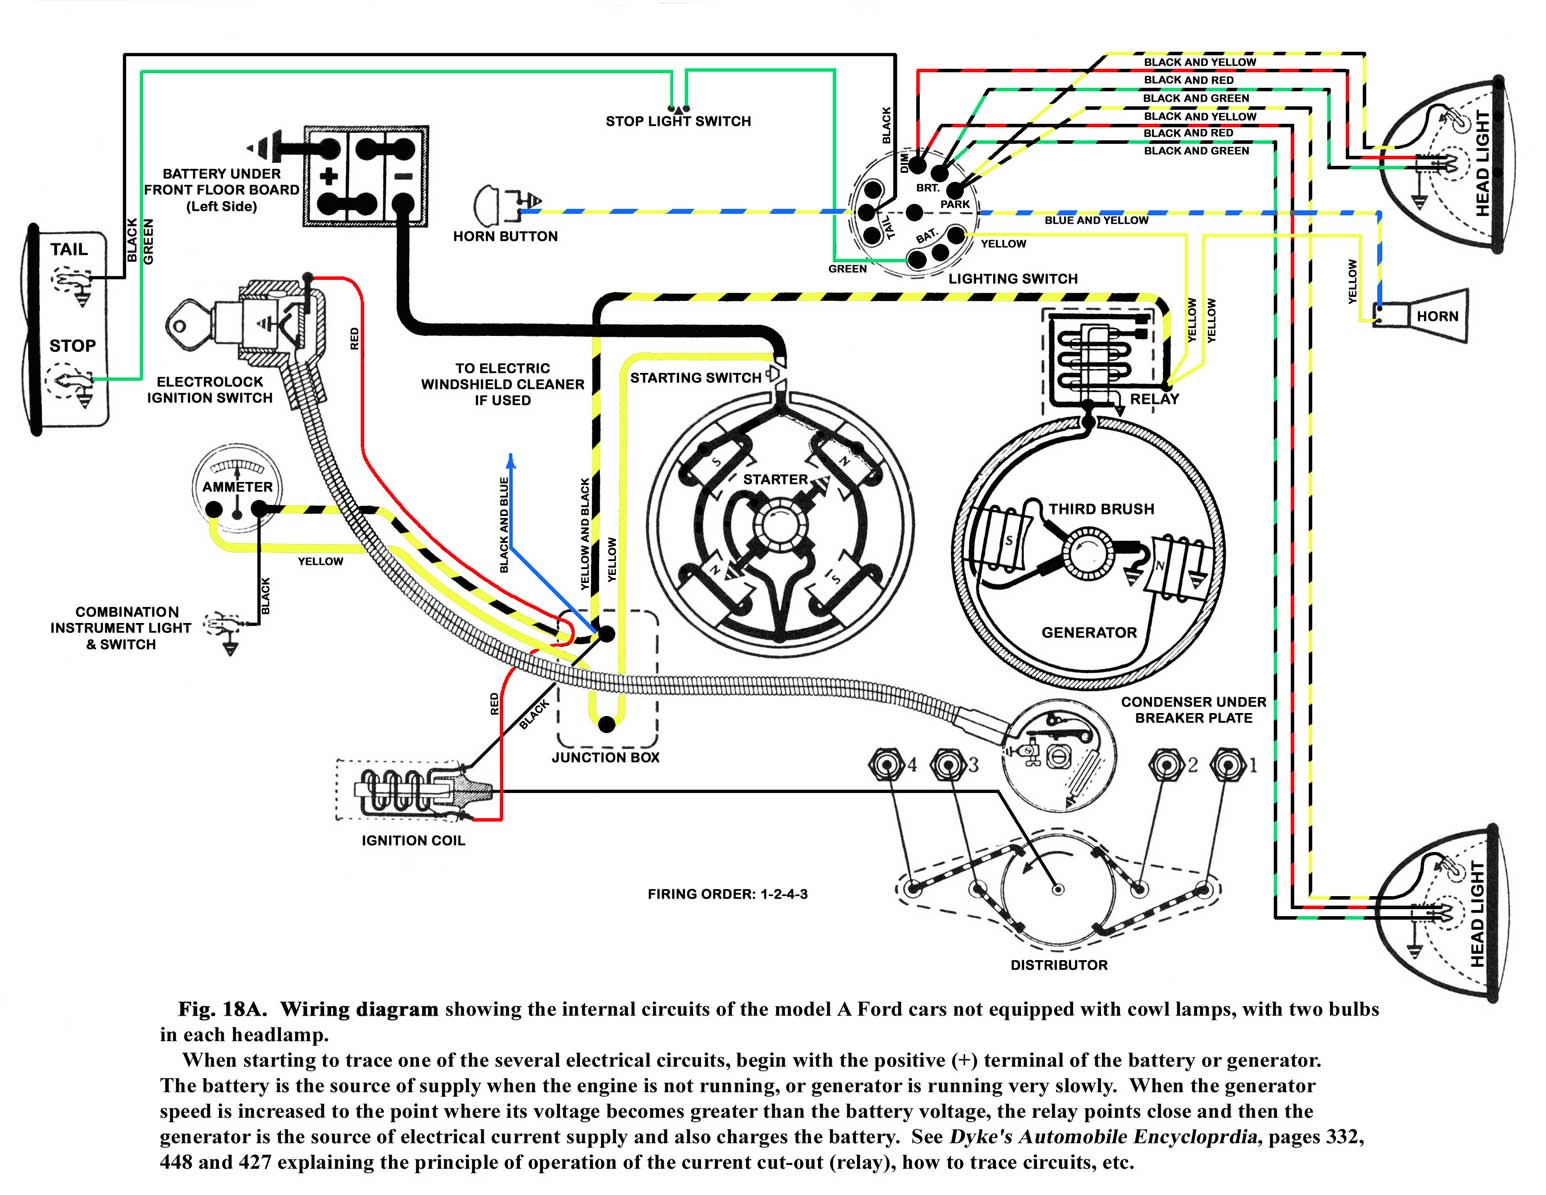 Ford Ignition Wiring Diagram Libraries 1976 Turn Signal Switch Detailed Diagrammodel A Third Level